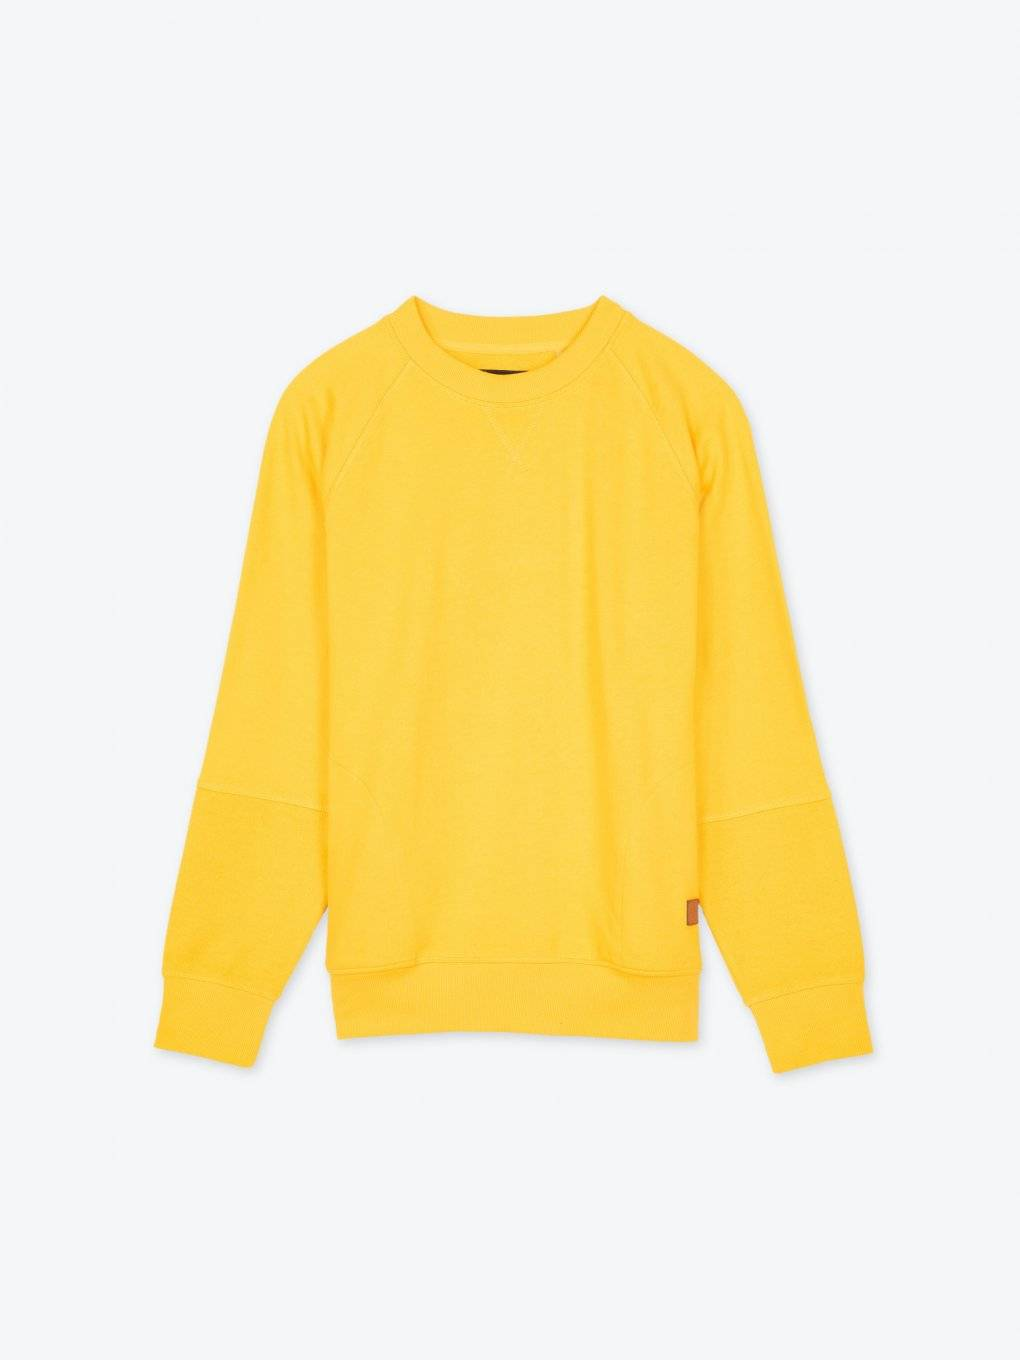 Basic raglan sleeve sweatshirt